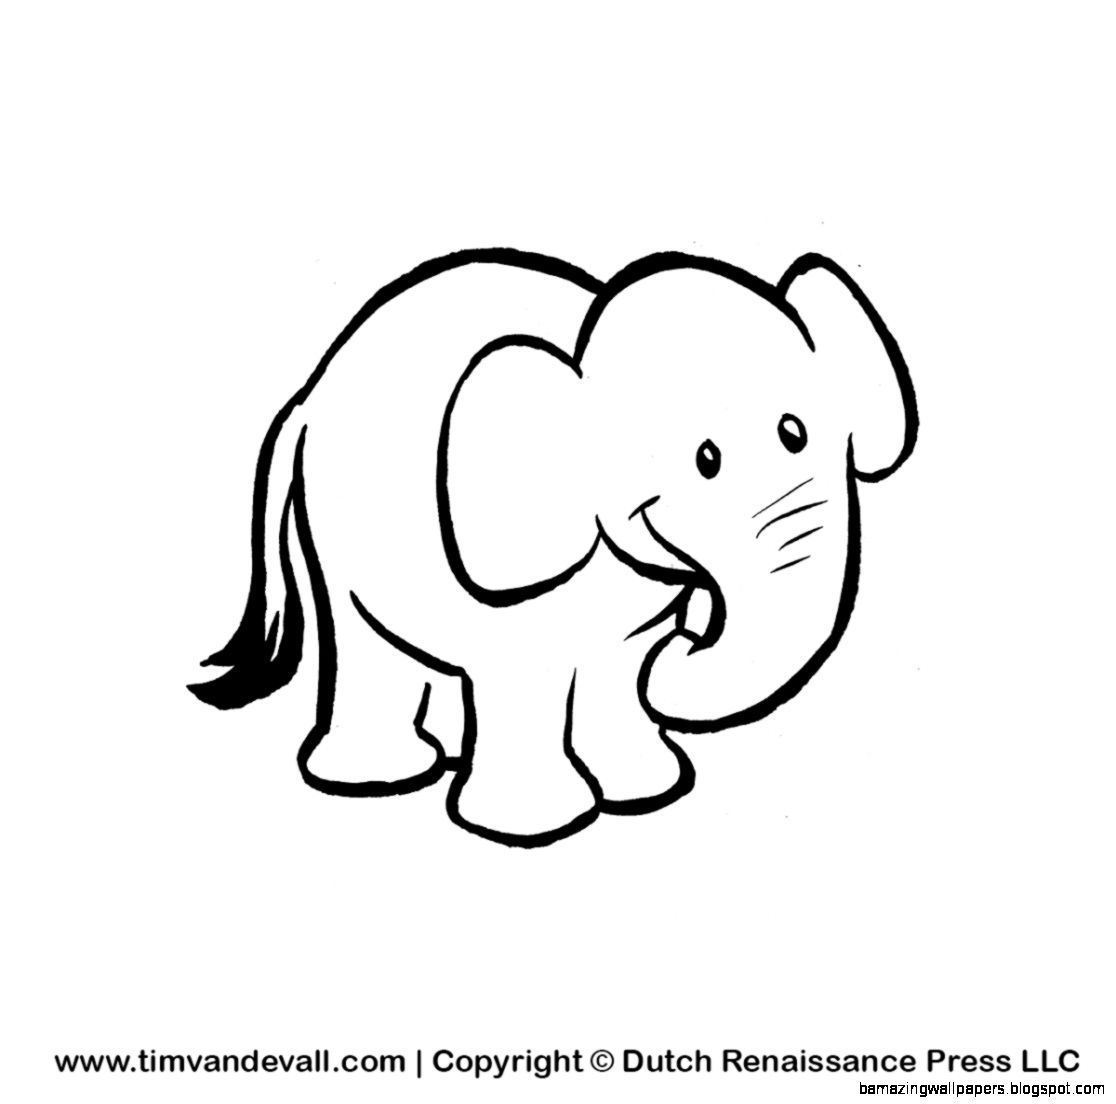 white elephant drawing at getdrawings com free for personal use rh getdrawings com white elephant gift clipart white elephant game clipart